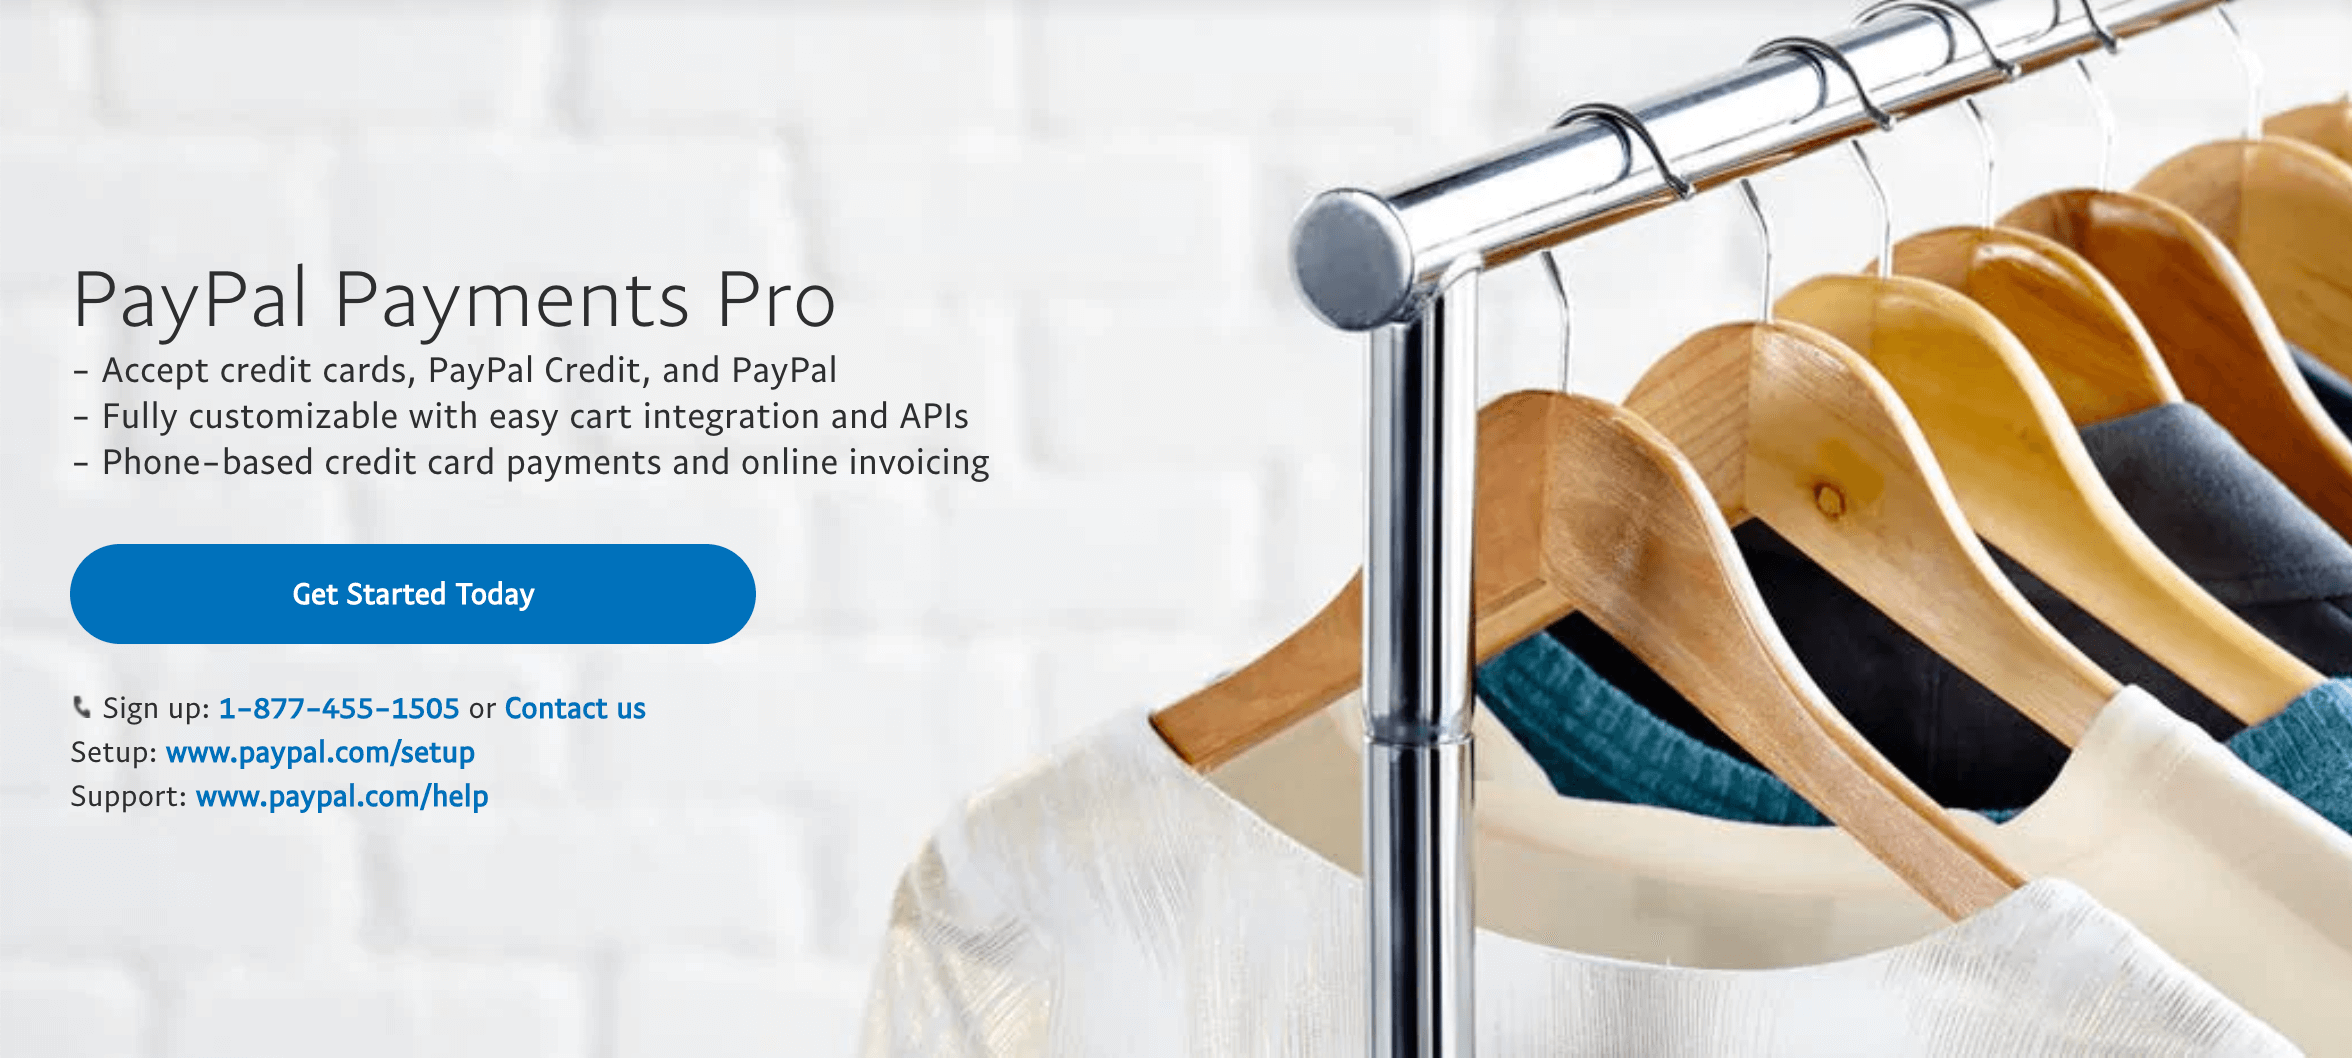 The PayPal Pro webpage.